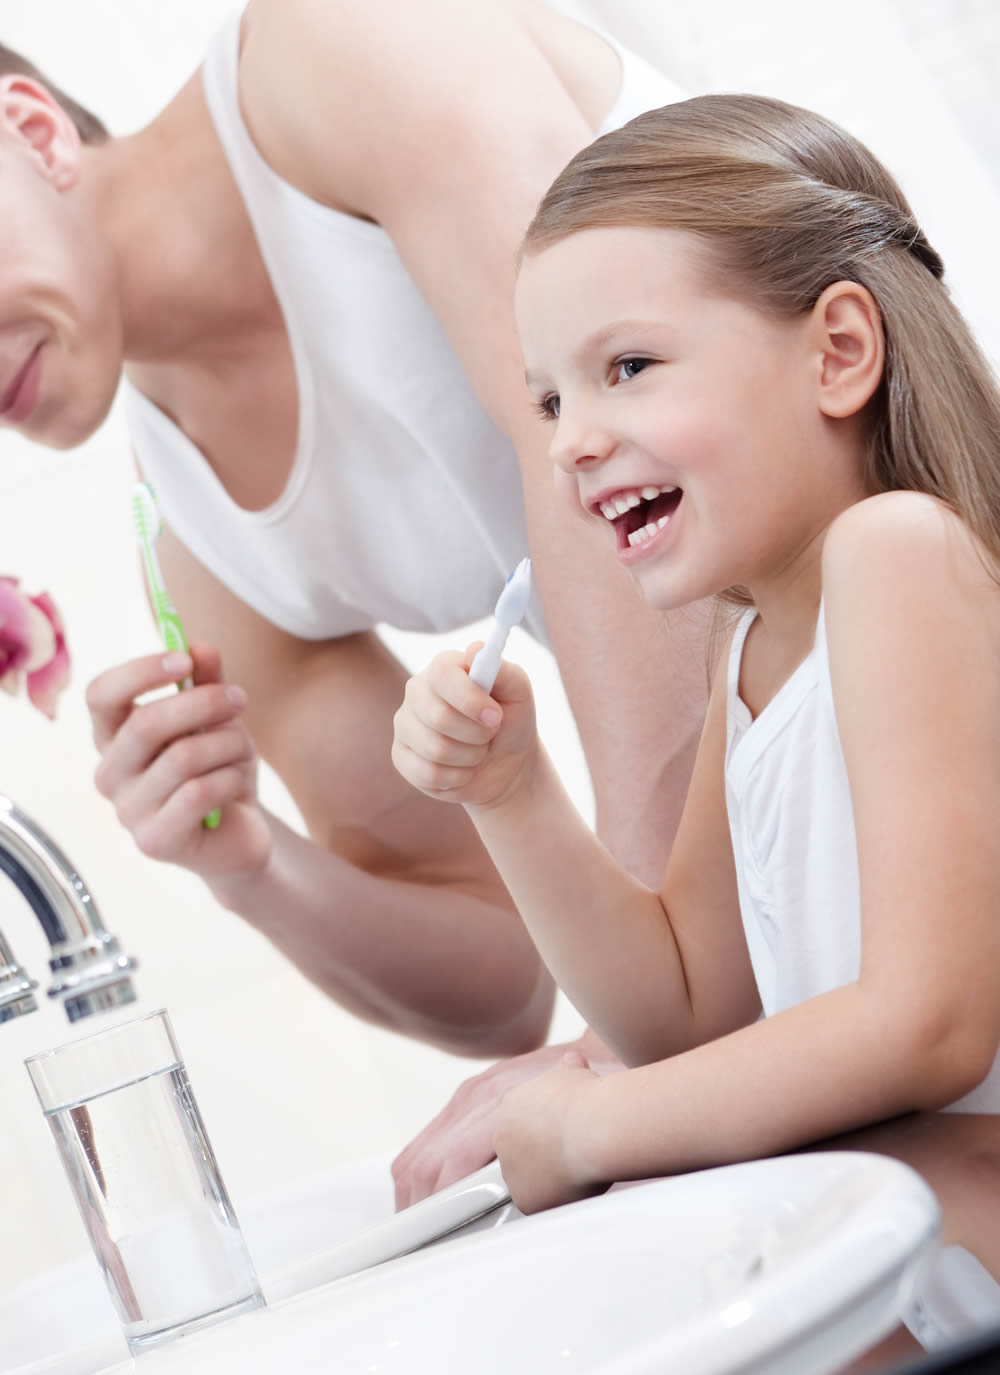 Girl Brushes Teeth With Her Father